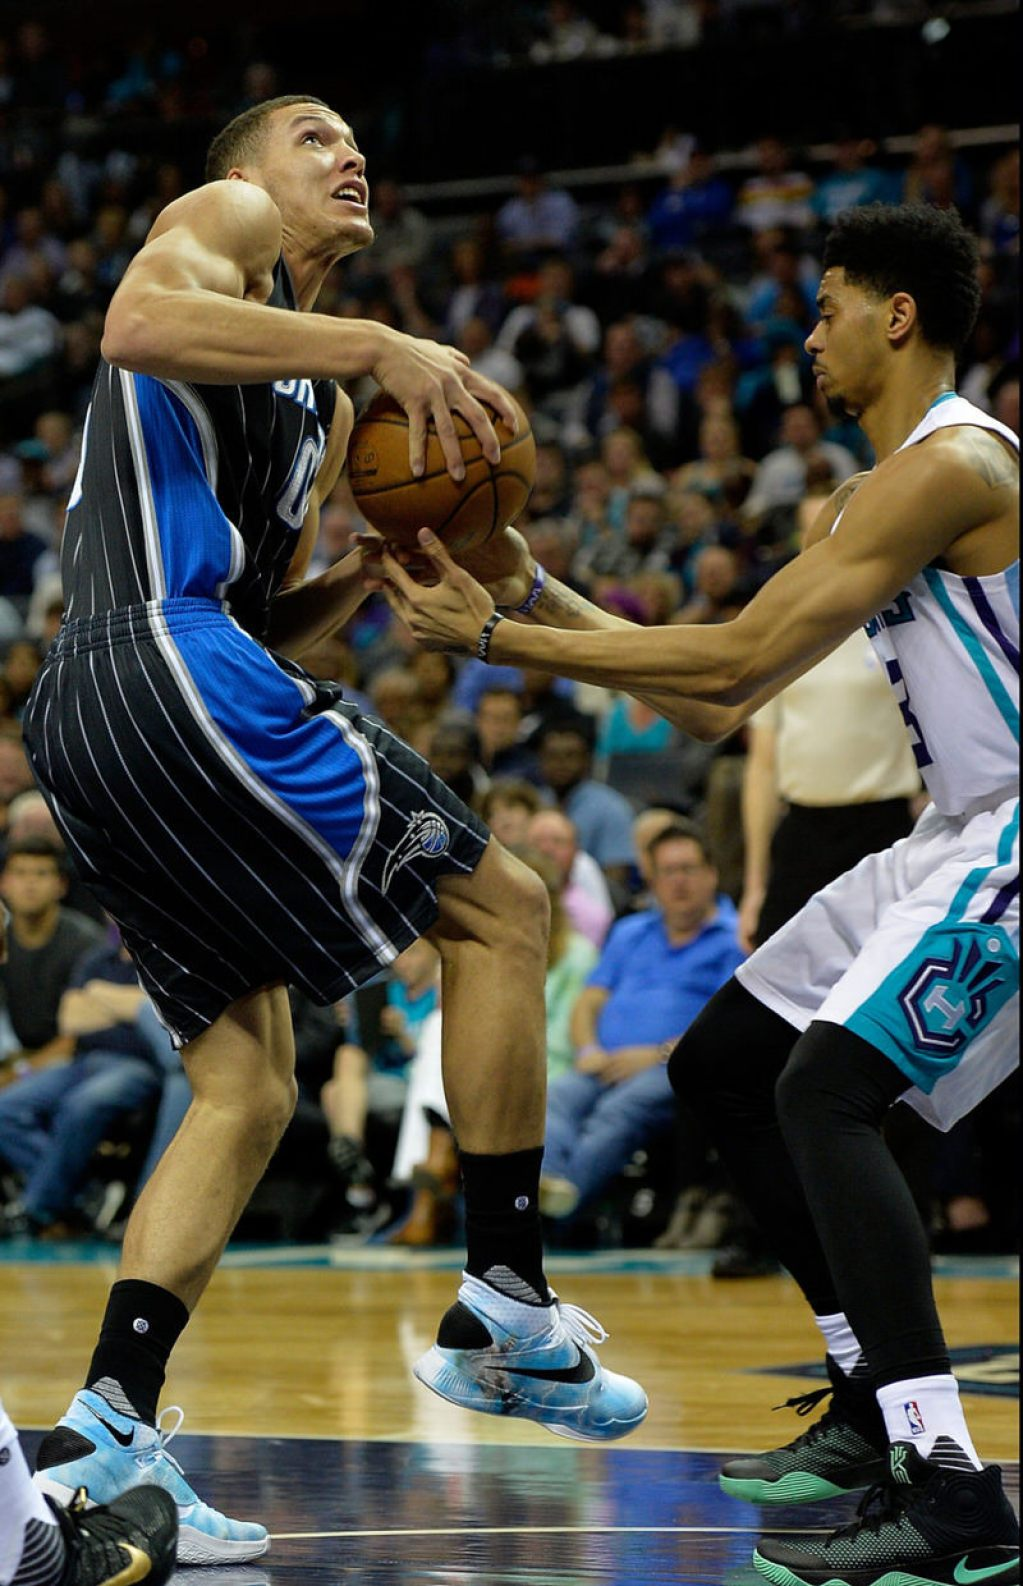 06b5094d8c96 Aaron Gordon and Jeremy Lamb in the Nike Zoom HyperRev 2016 and the ...